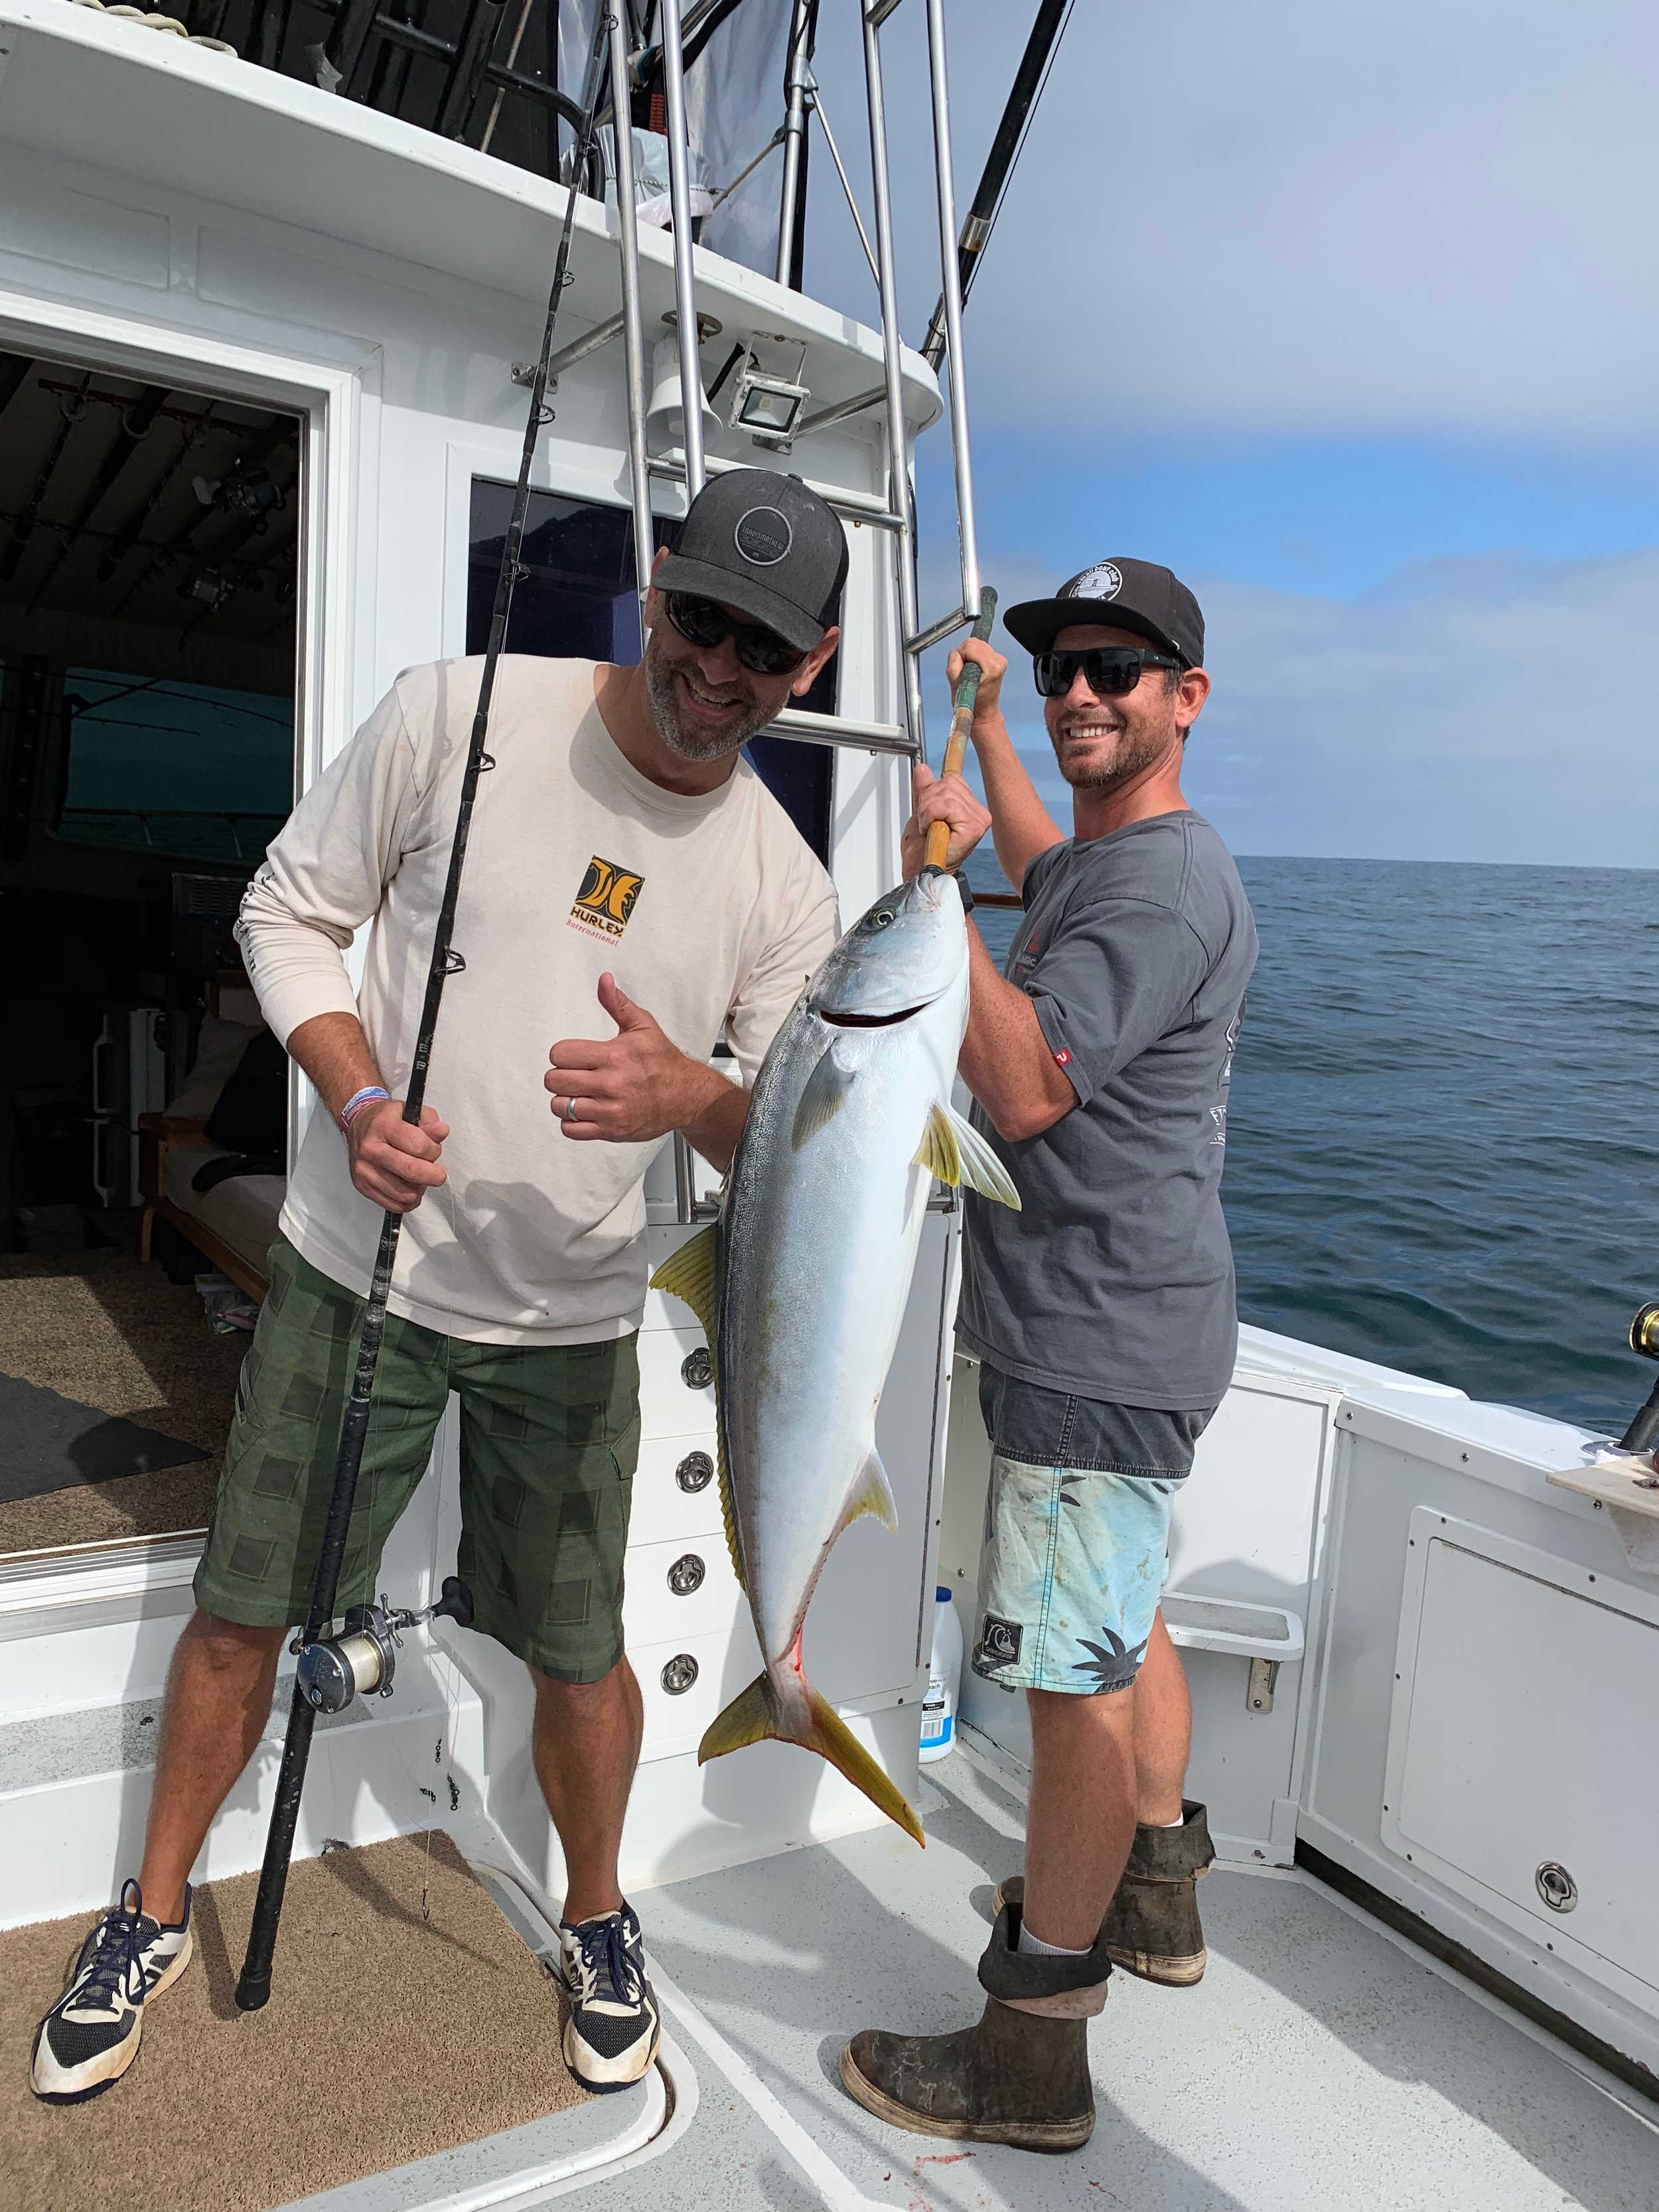 - August-8-2019While the kids were picking away at the bottom fish Dad fly-lined a sardine and caught a Nice Coronado Island Yellowtail!